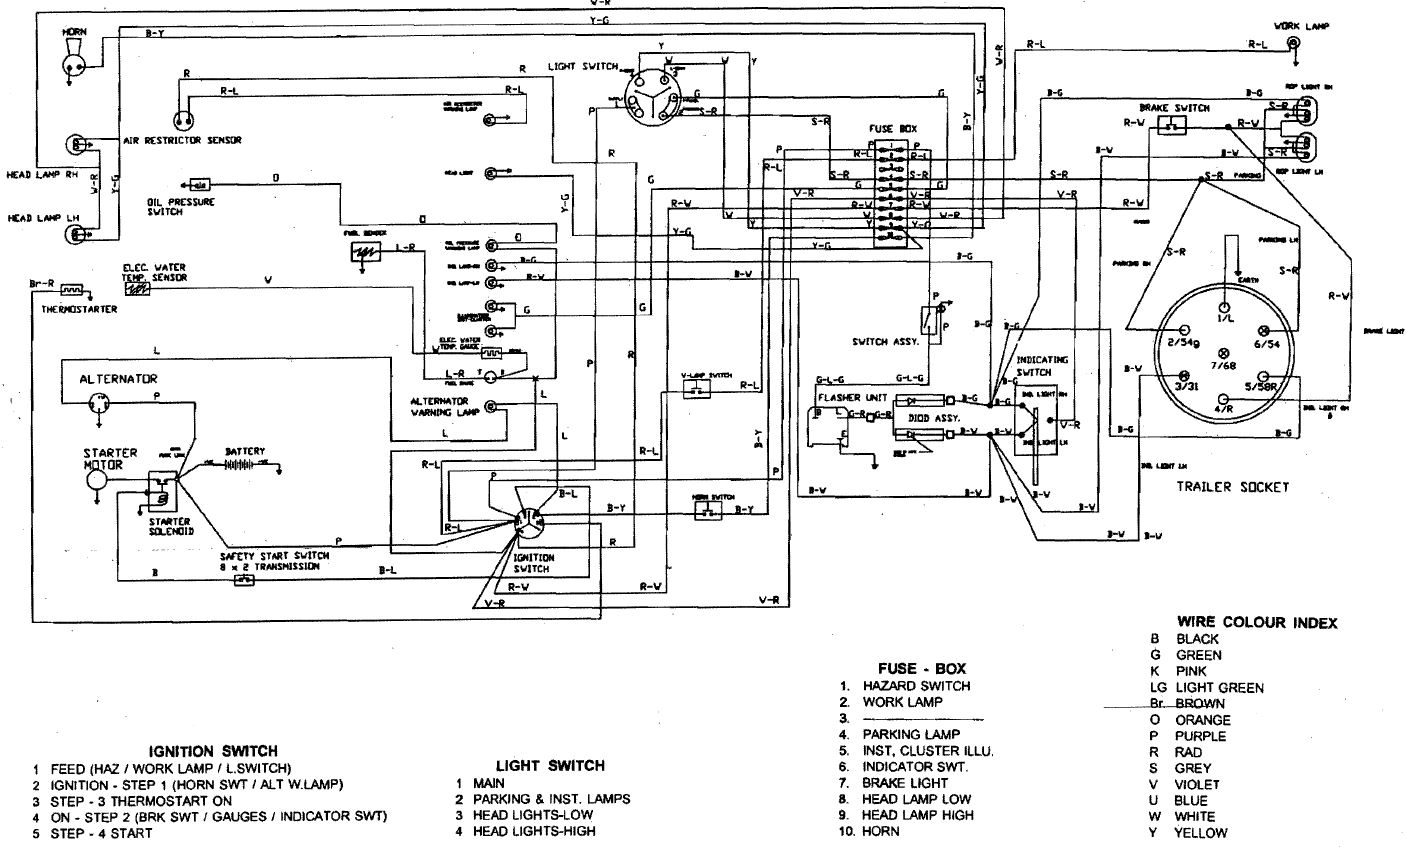 20158463319_b82d524c3d_o ignition switch wiring diagram john deere lawn mower wiring diagram at panicattacktreatment.co